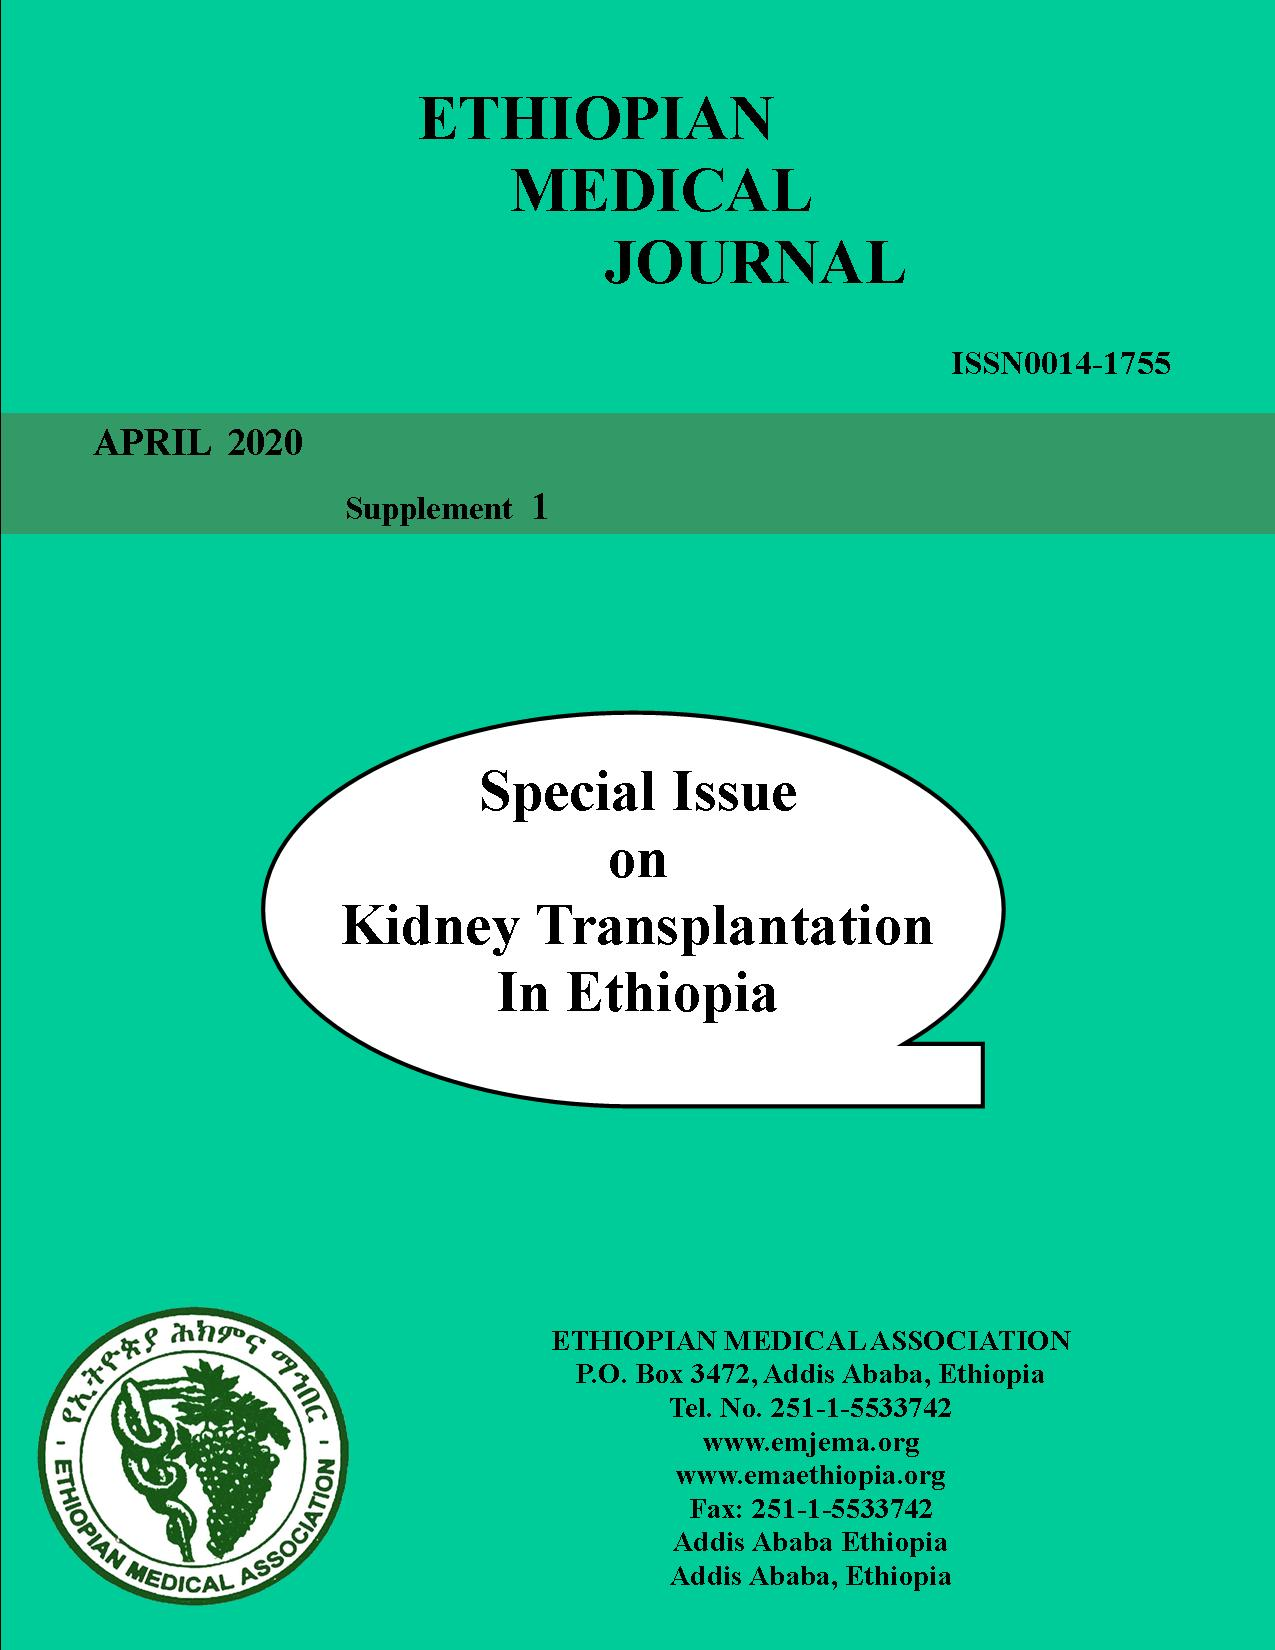 Medical Outcome Of Renal Allograft Donors At National Kidney Transplant Center Saint Paul S Hospital Millennium Medical College Addis Ababa Ethiopia Ethiopian Medical Journal